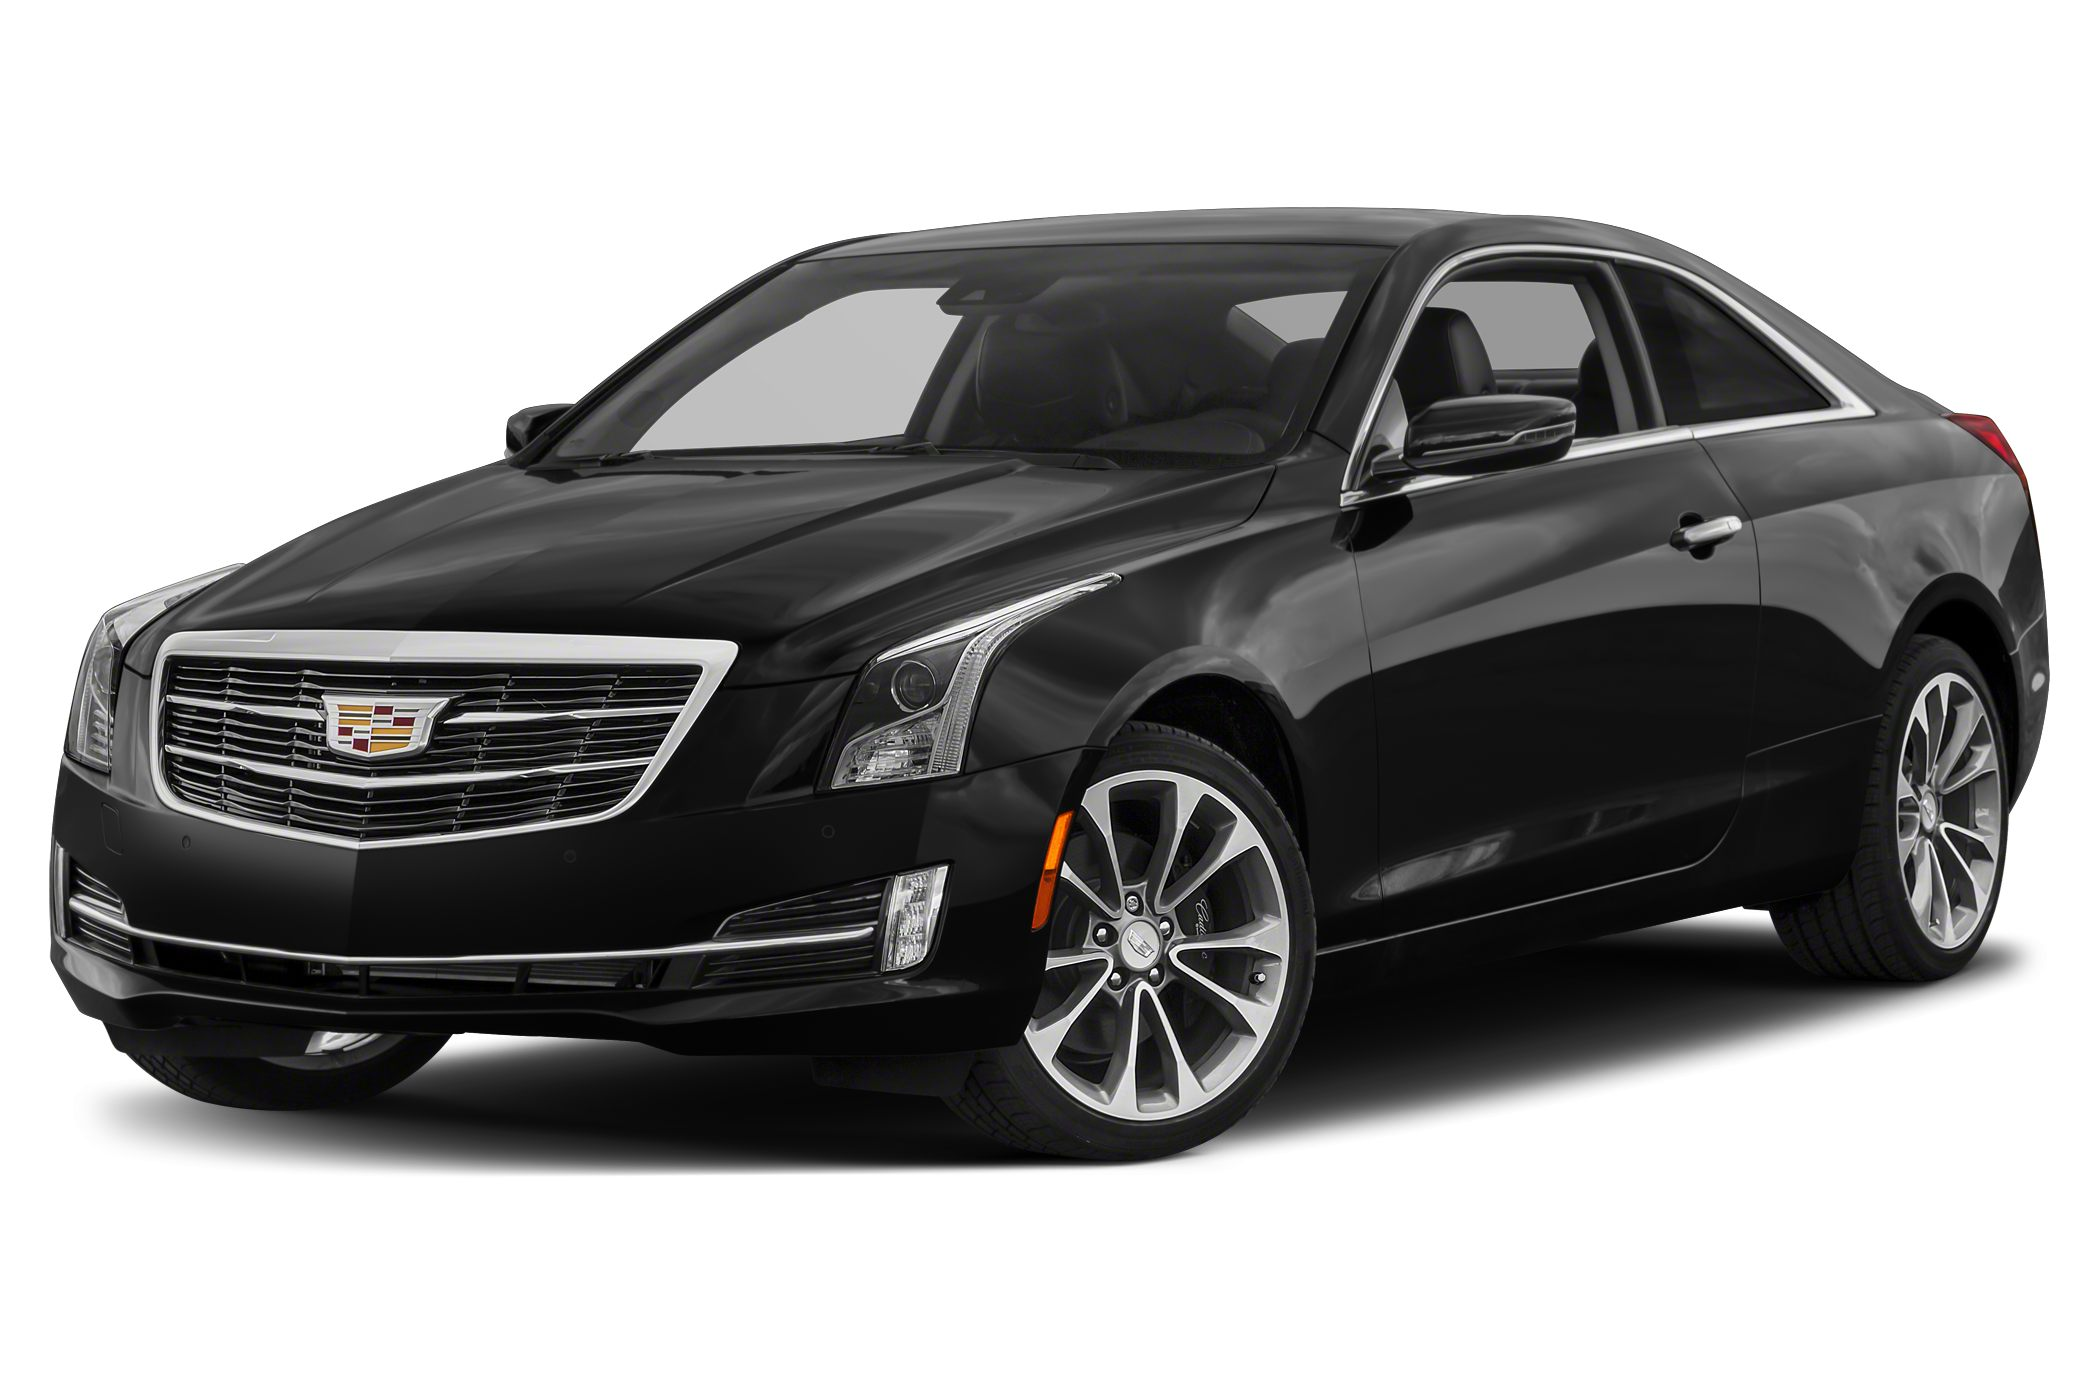 2017 Cadillac Ats 3 6l Premium Performance 2dr Rear Wheel Drive Coupe Specs And Prices